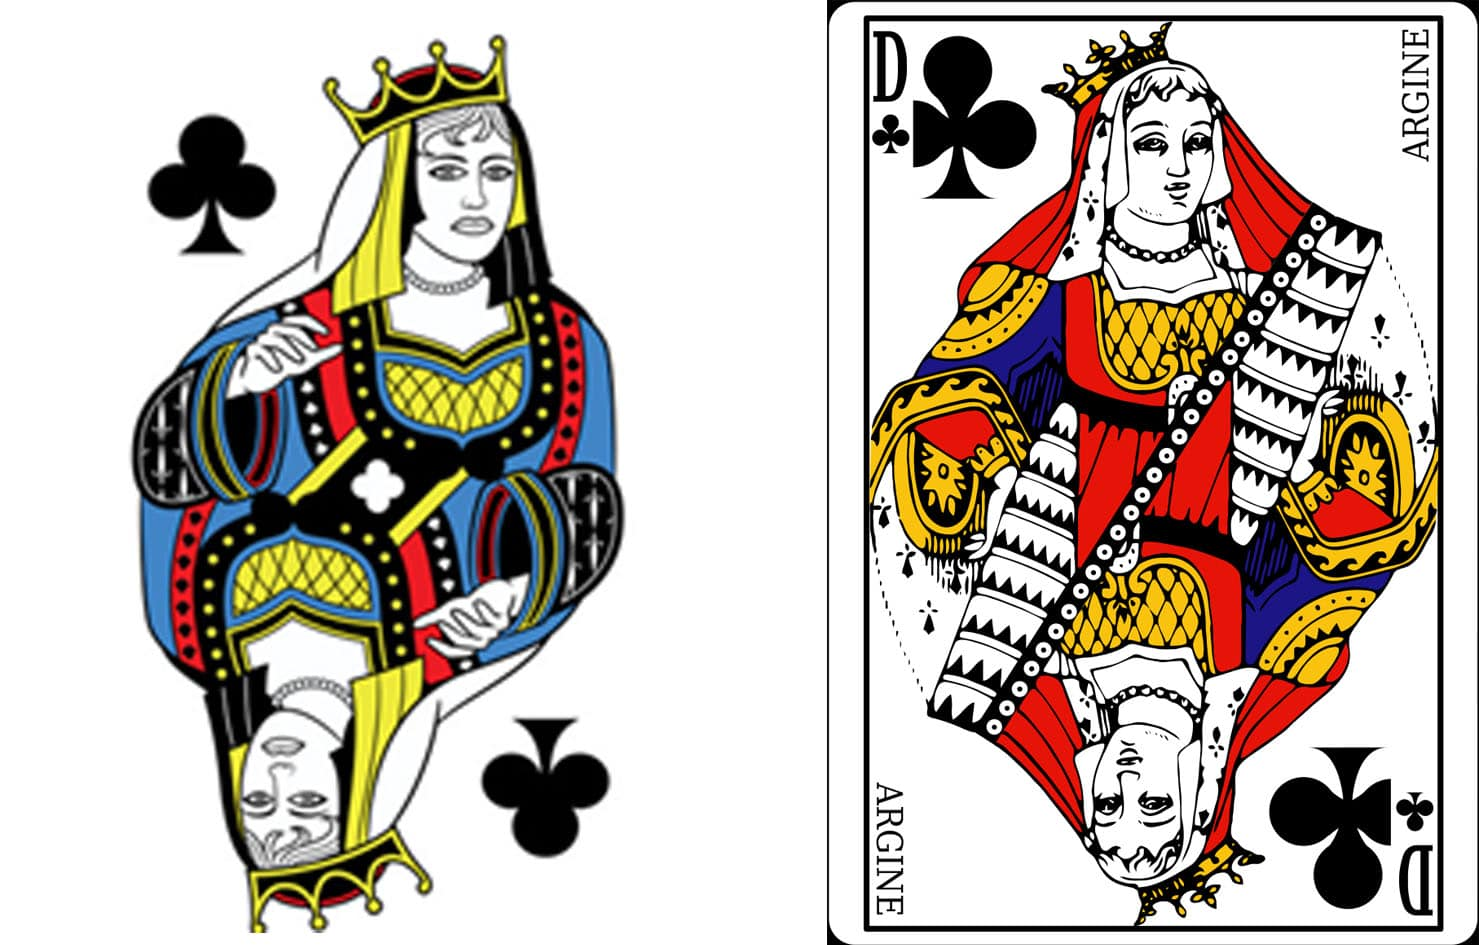 Queen of Clubs Argine